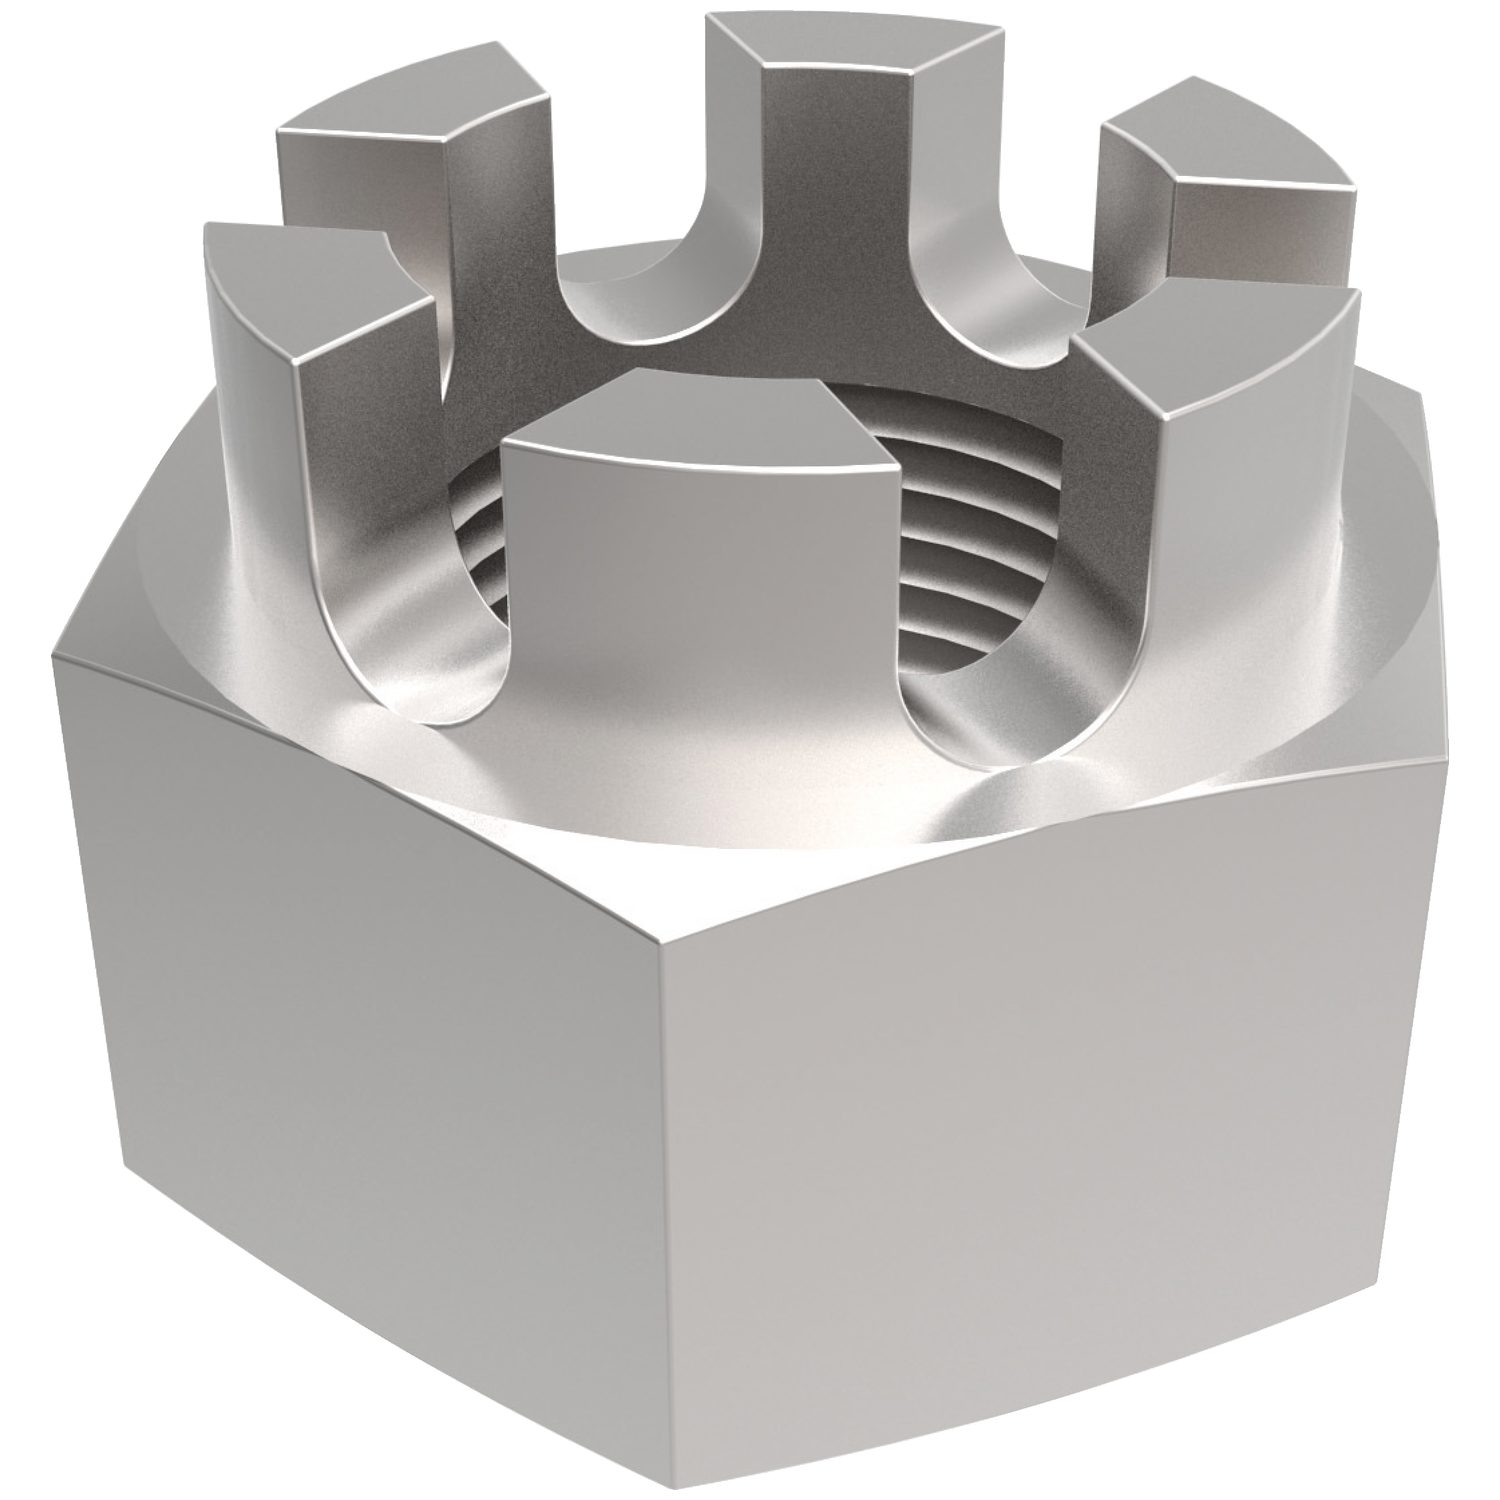 Hexagon Castle Nuts Hexagon castle nuts made from A4 stainless steel ranging from sizes M5 to M36. Manufactured to DIN 935.